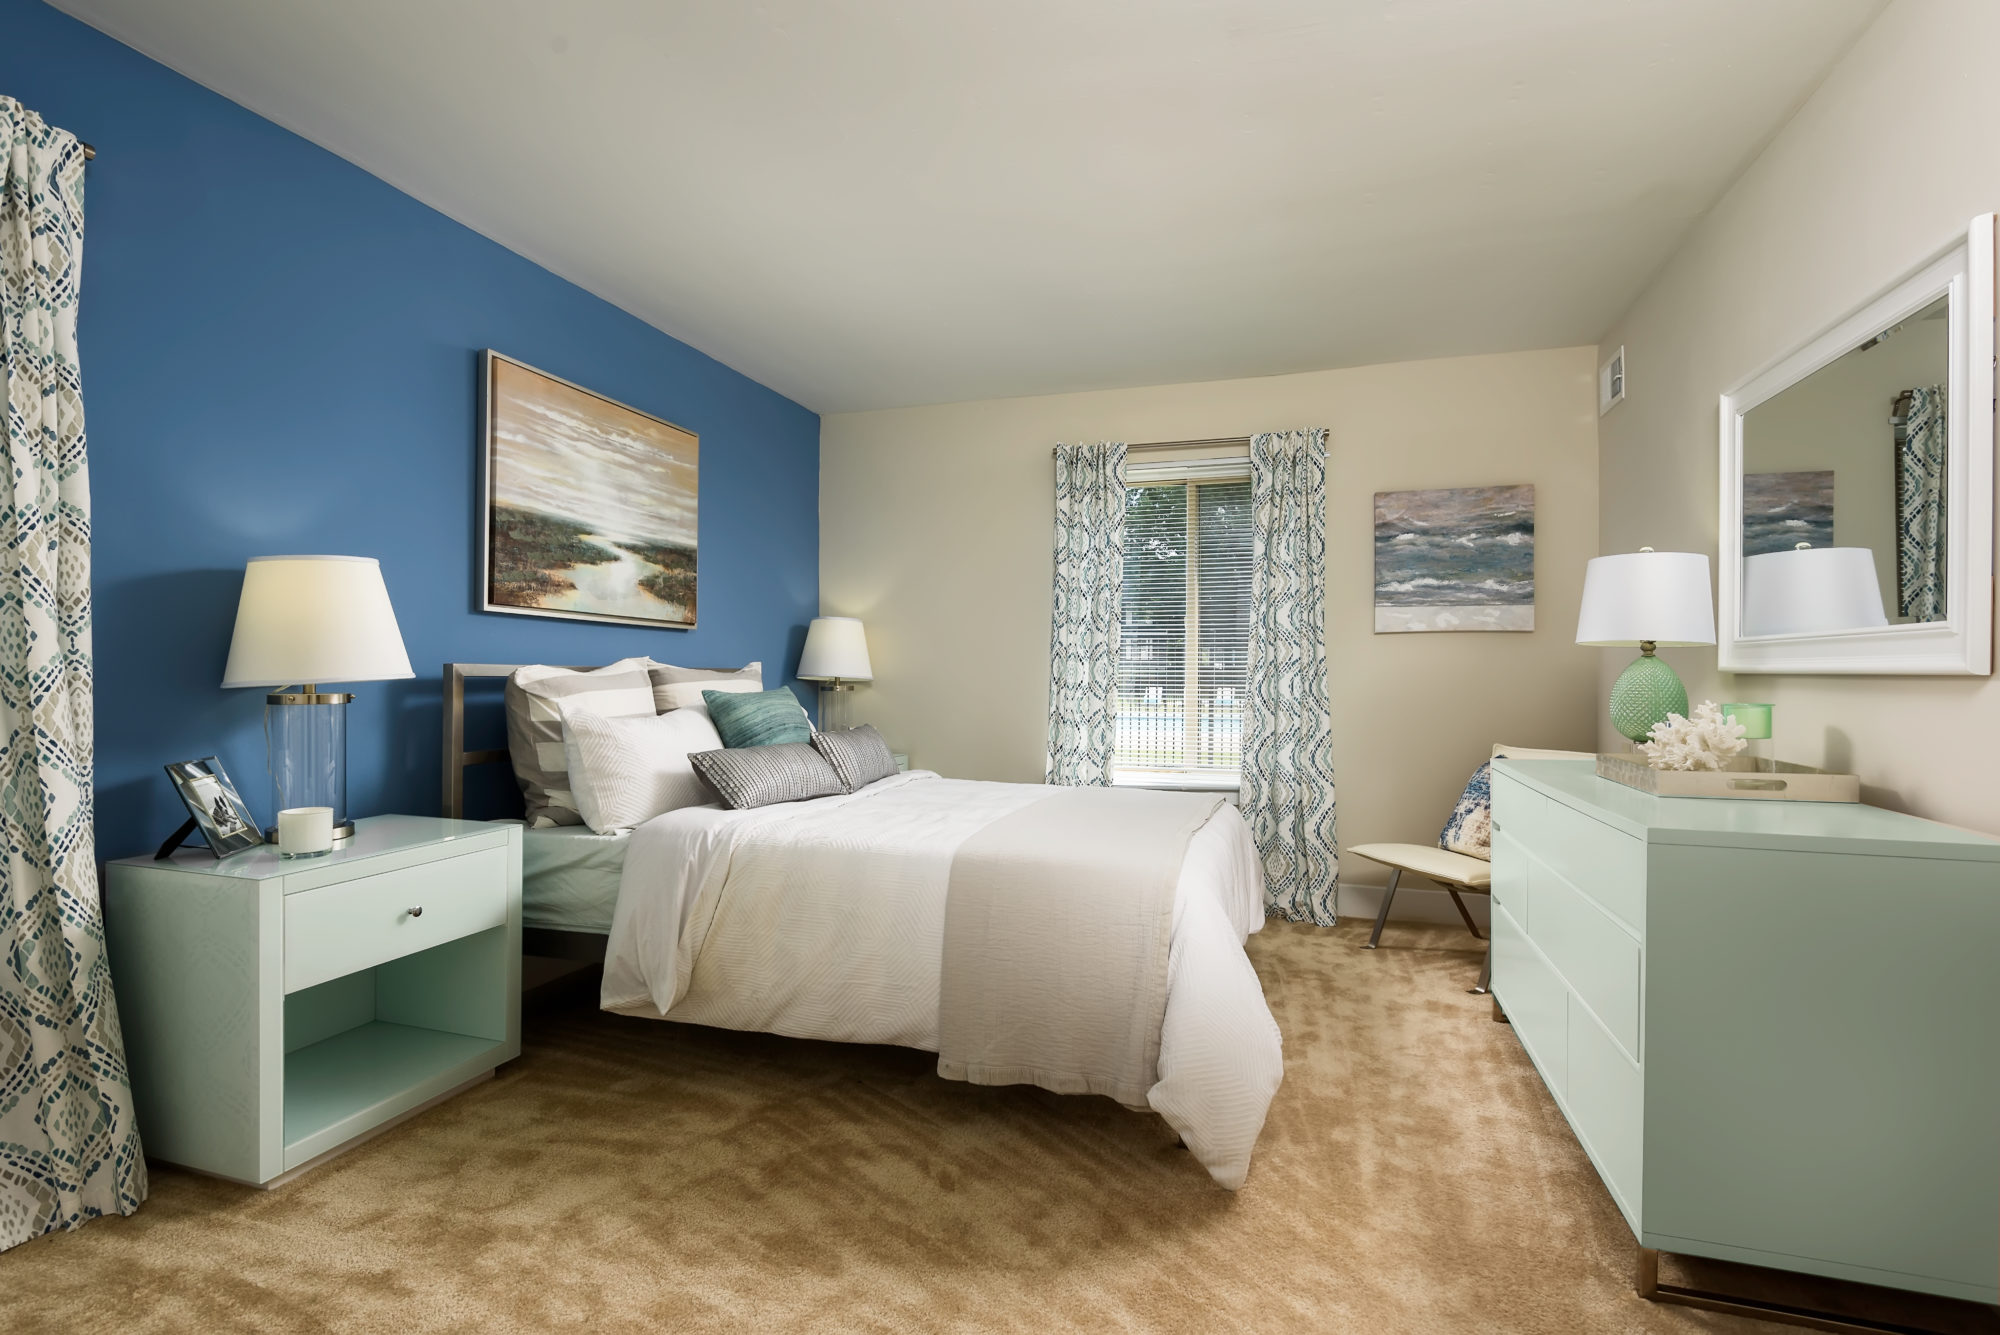 RWP.8.12.19.Coopers.Place.2.Bedroom.-13